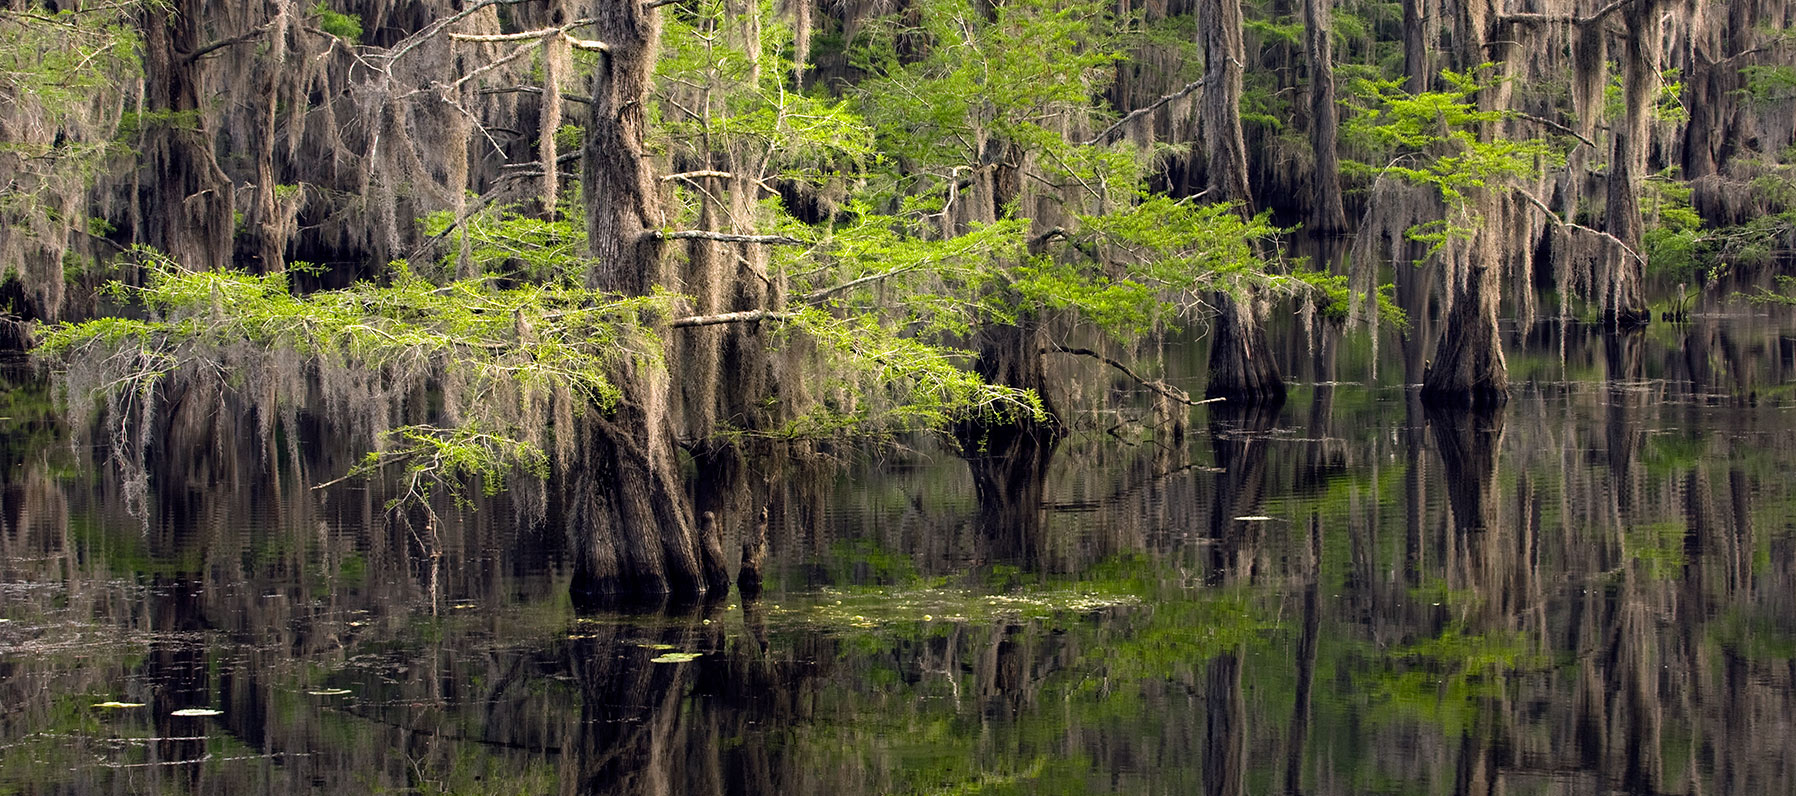 Beautiful Marsh Wetland Landscape moreover What Happened To The Okefenokee Sw likewise Habitat mgt also I0000AFYdoqhmTno as well Florida Panthers. on fish in cypress swamp